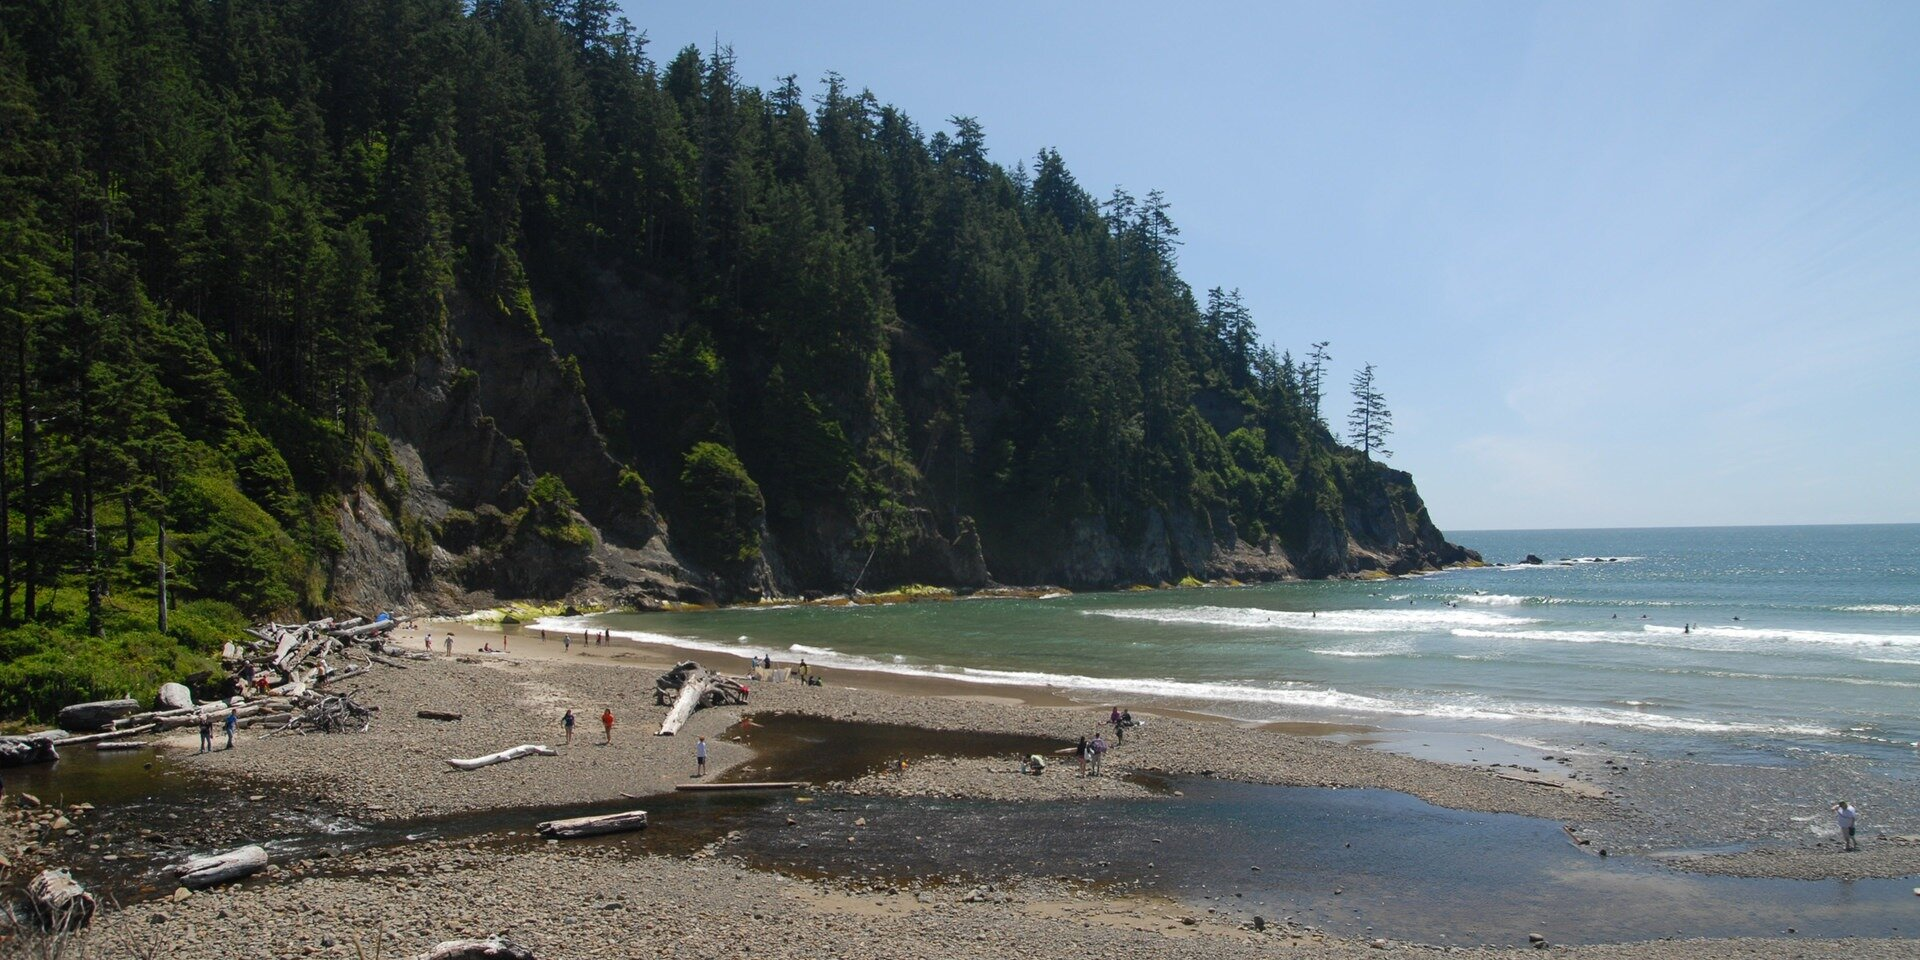 The beauty of Short Sands Beach is un-matched. Image Courtesy: OutdoorProject.com